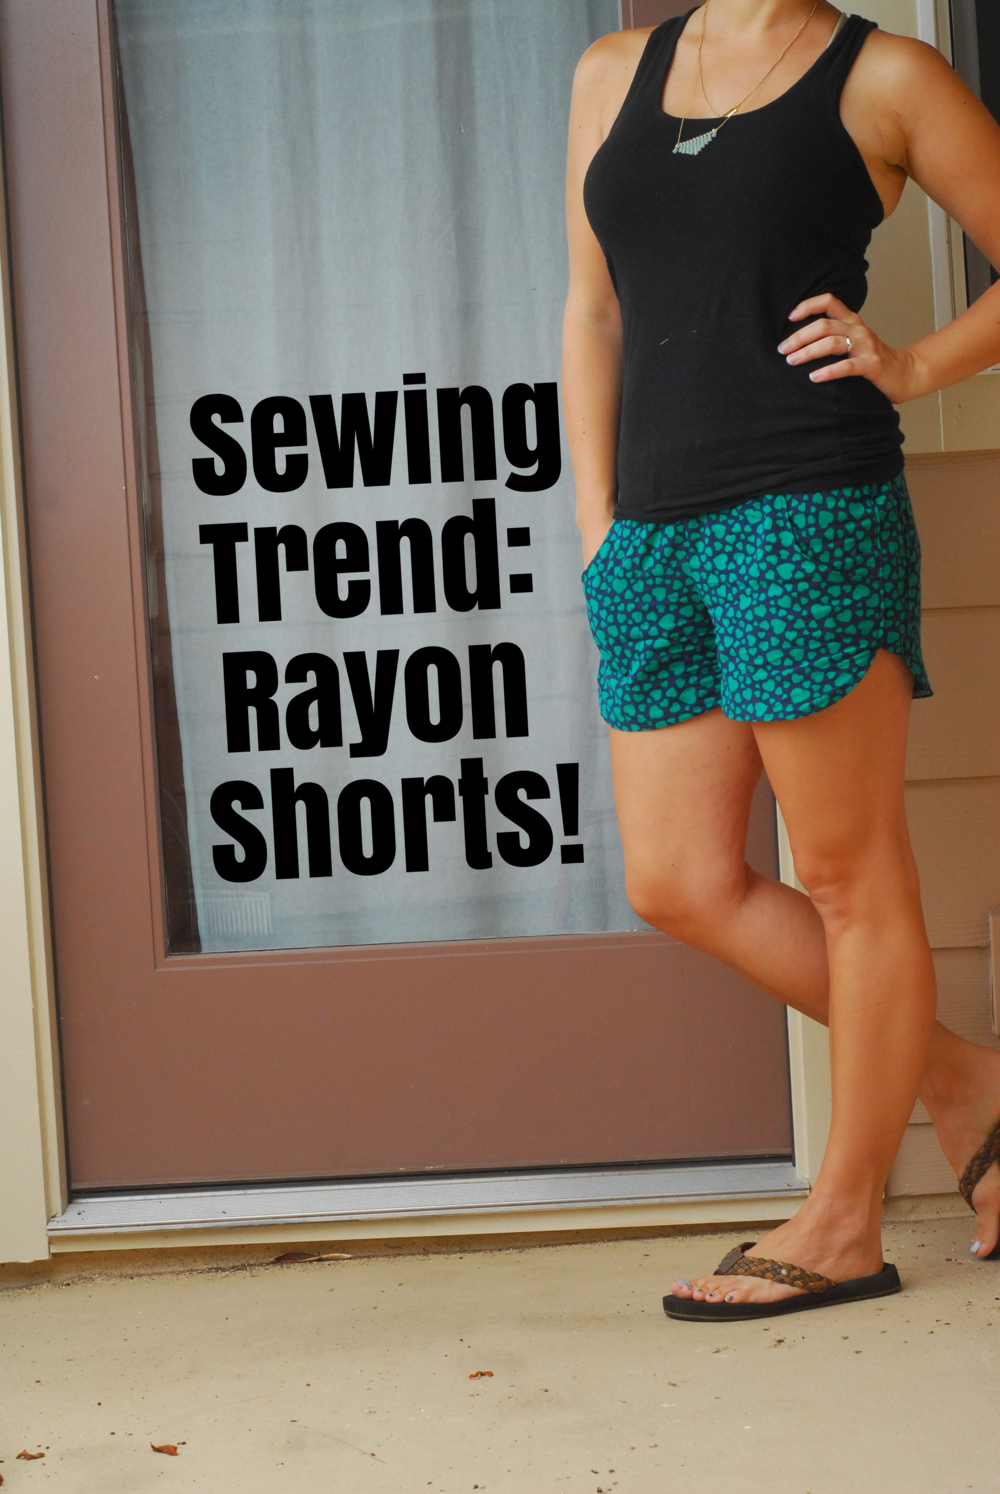 Sewing on Tread: Rayon Shorts